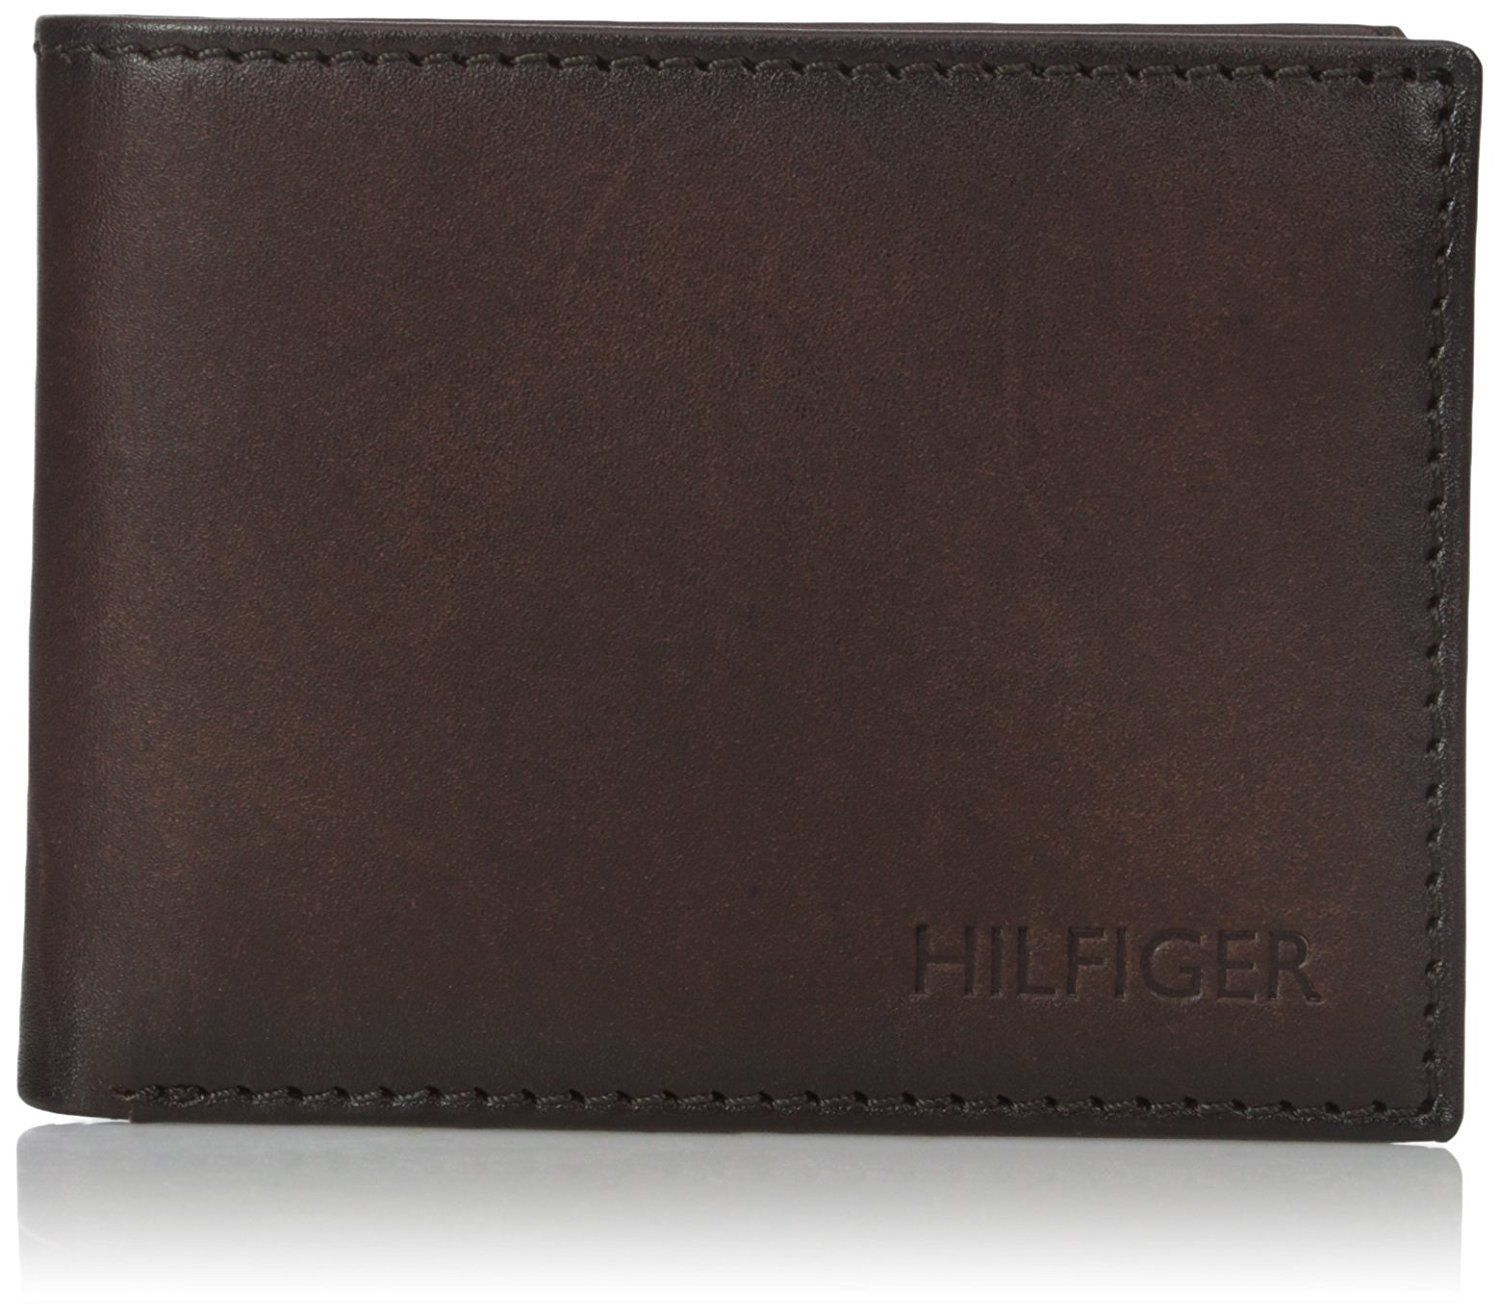 Tommy Hilfiger Men's Leather Credit Card Wallet Passcase Billfold 31TL22X005